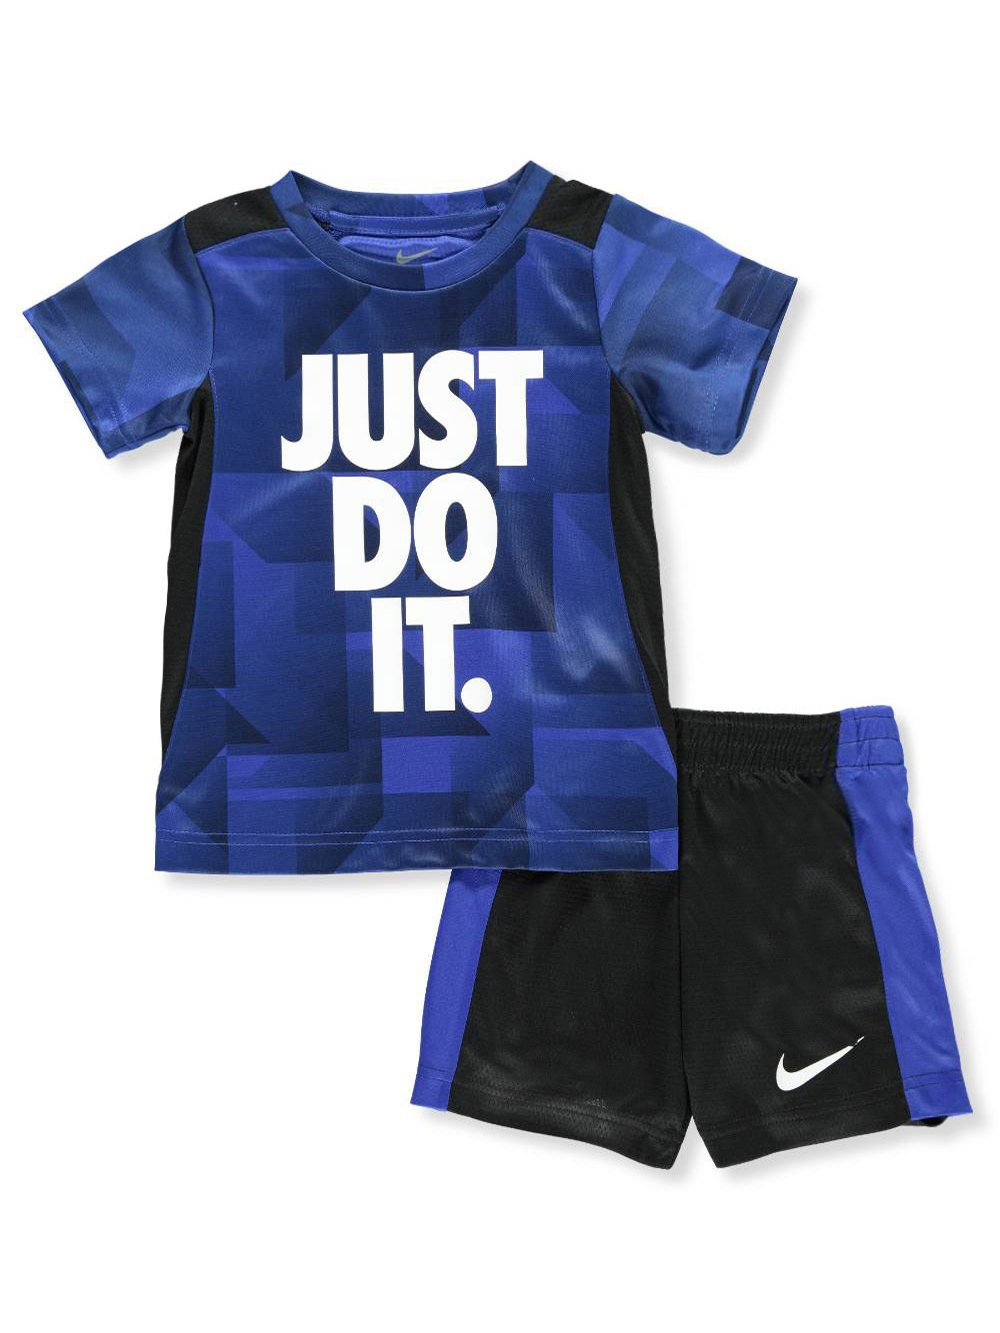 NIKE Children's Apparel Boys' Toddler Graphic T-Shirt and Shorts 2-Piece Set, Hyper Royal/Obsidian 4T by NIKE Children's Apparel (Image #1)